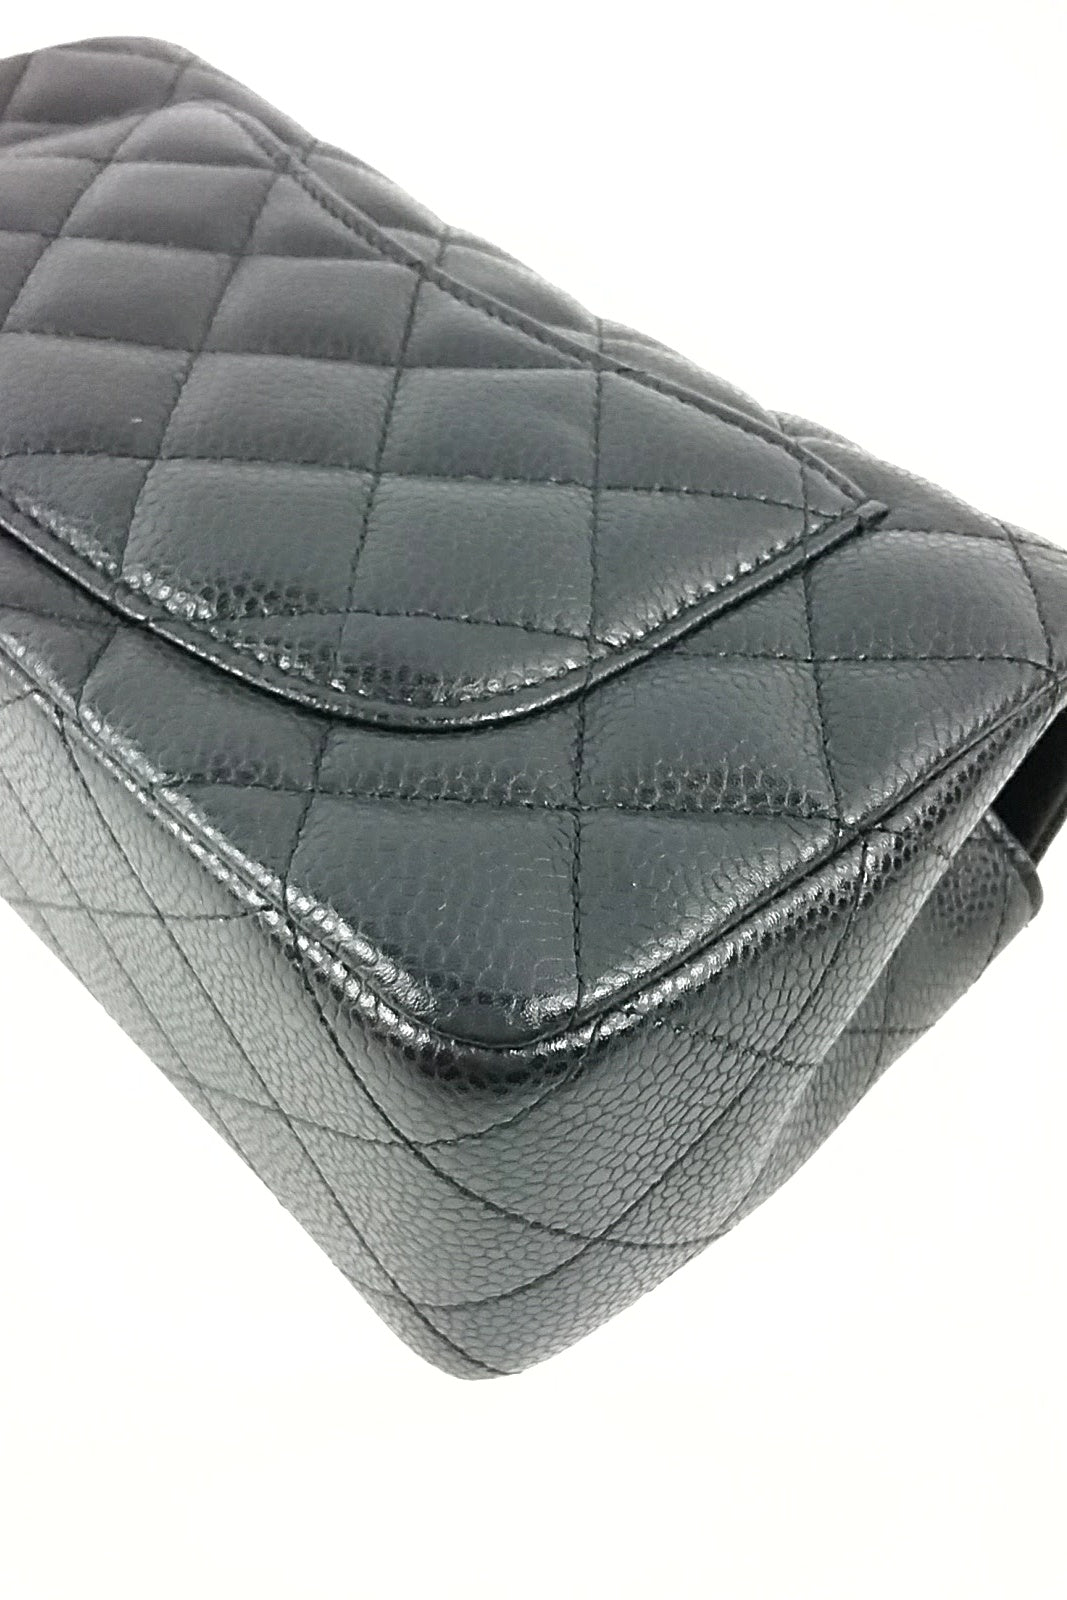 Black Caviar Rectangular Mini Flap Bag - ON LAYAWAY